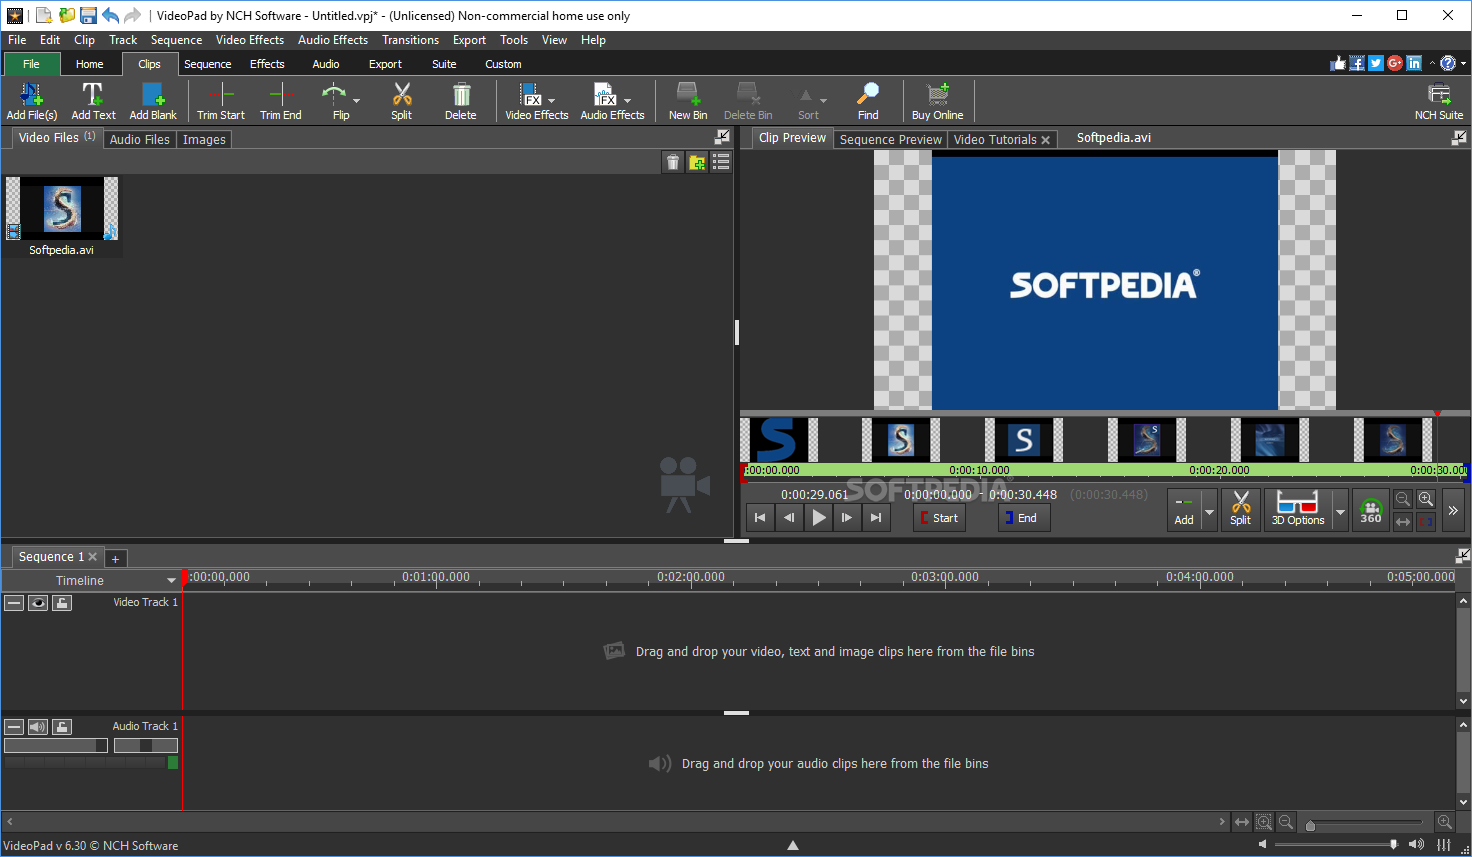 Download VideoPad Video Editor 7 30 Beta